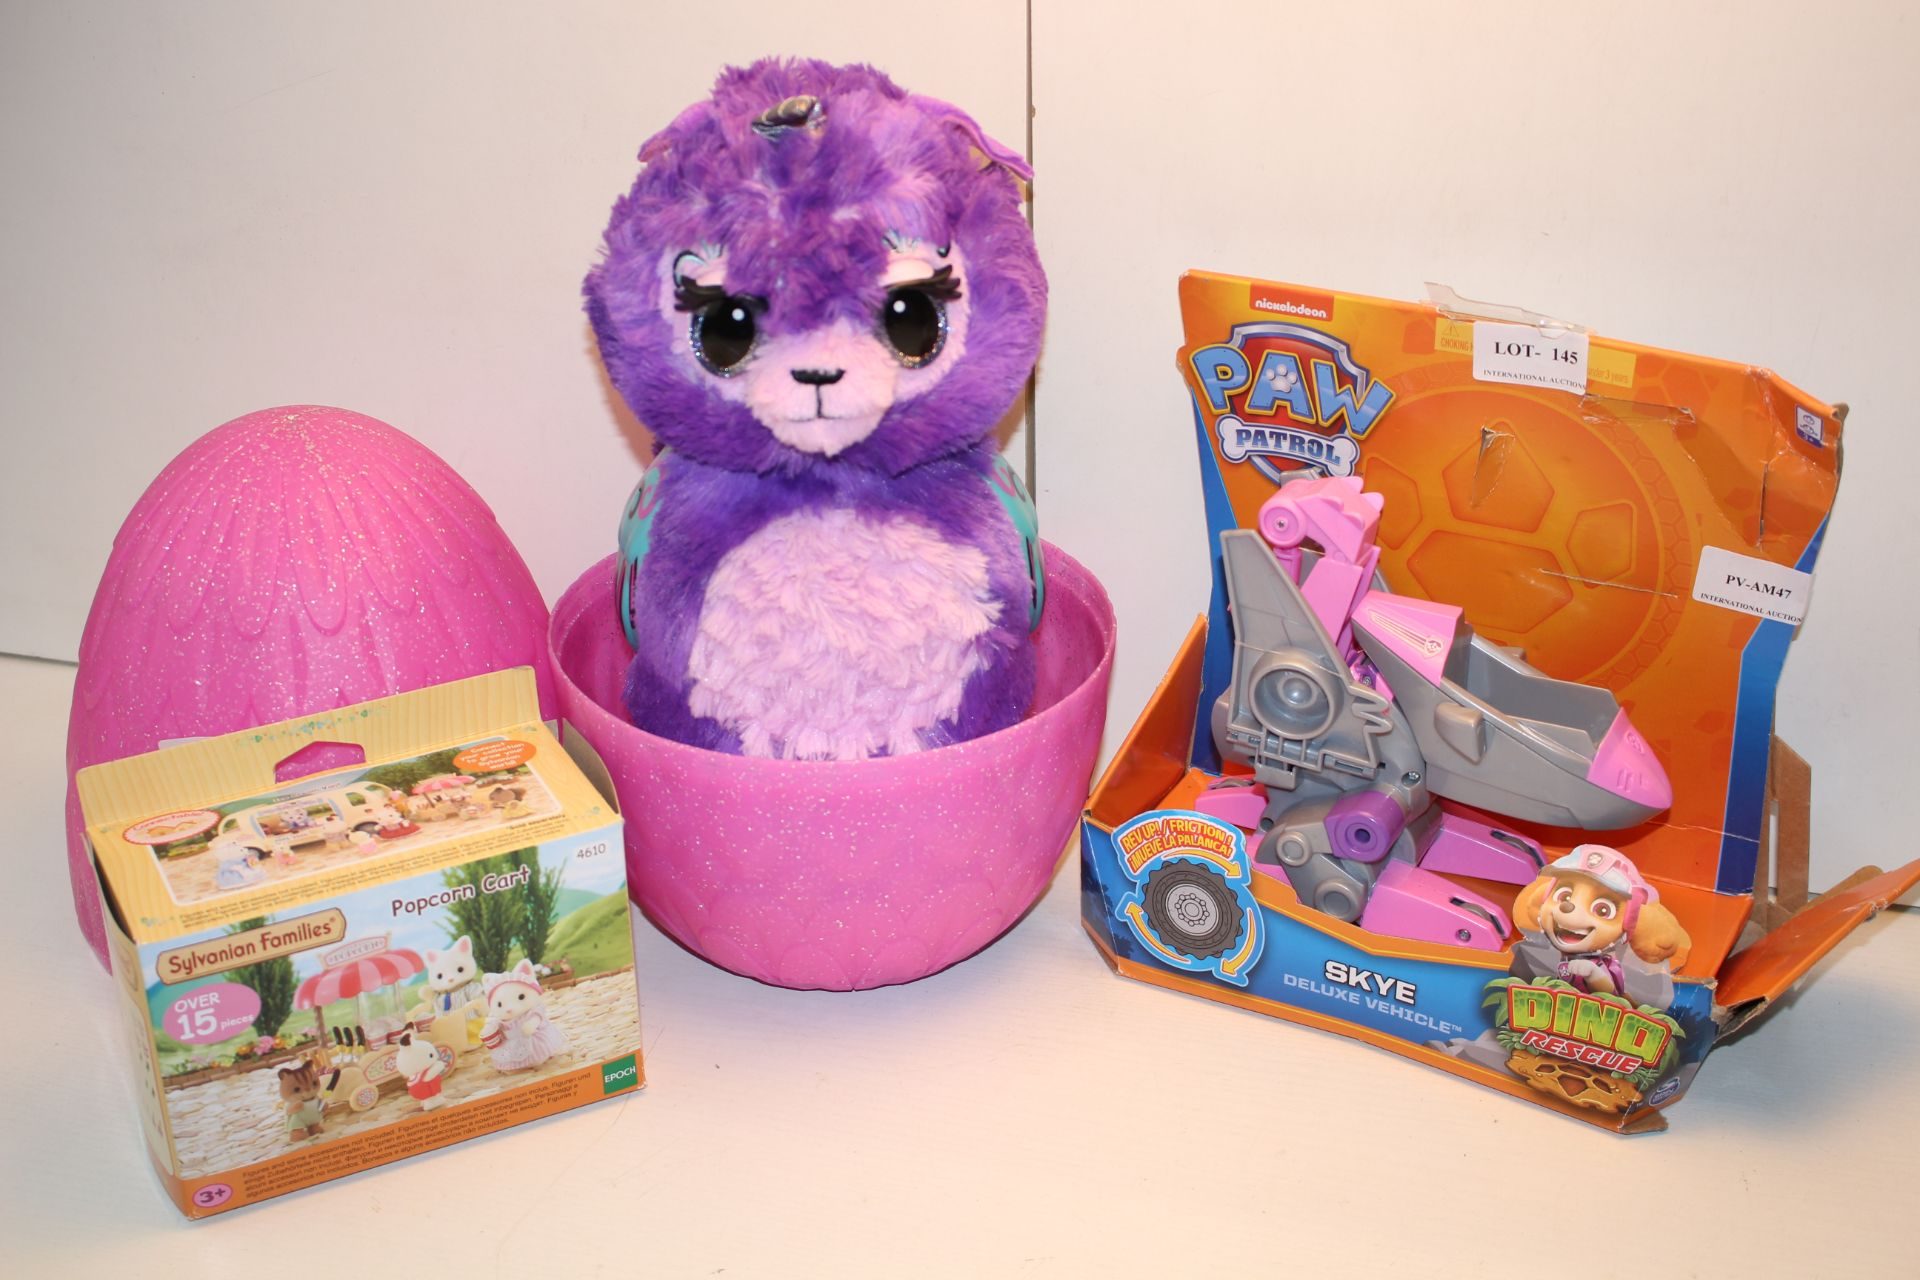 3X ASSORTED TOYS TO INCLUDE HATCHIMALS SYLVANIAN FAMILIES & DINO RESCUE (IMAGE DEPICTS STOCK)